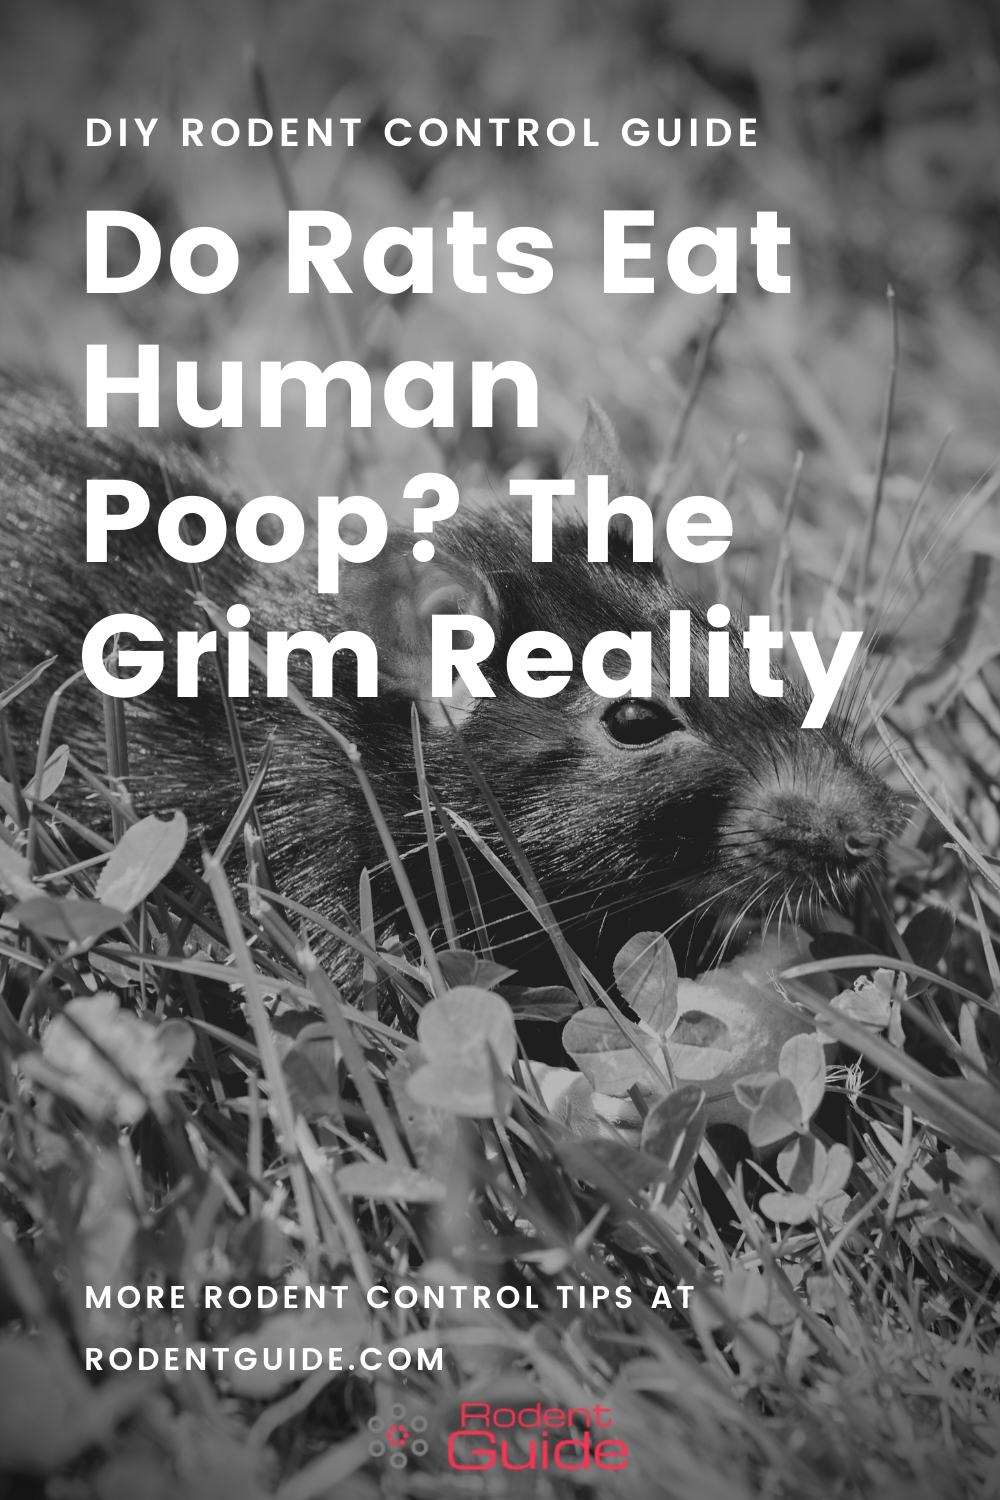 Do Rats Eat Human Poop_ The Grim Reality